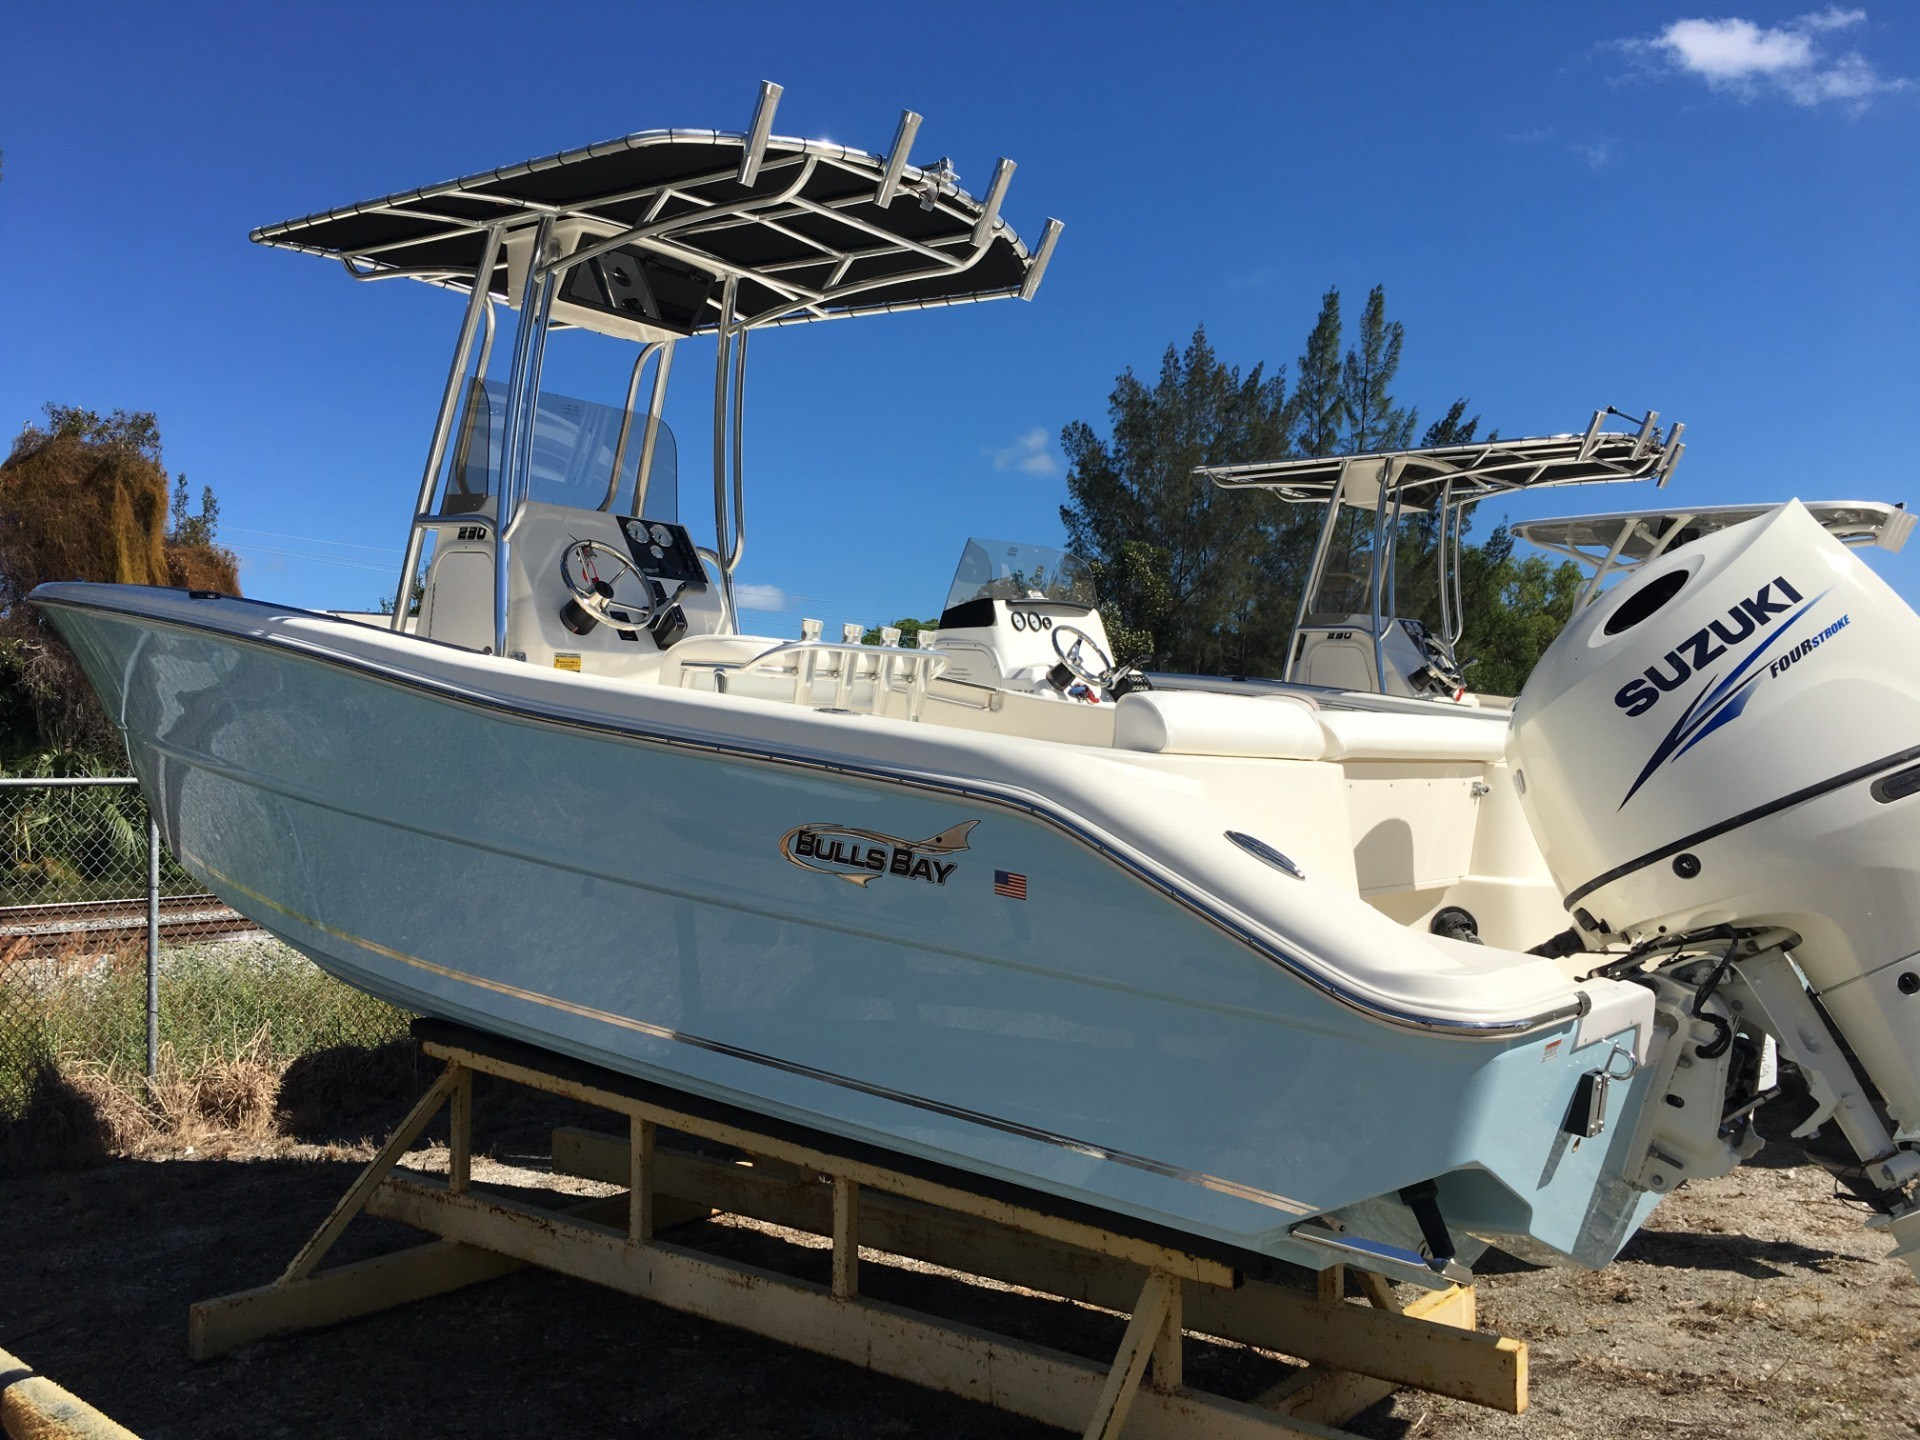 South Florida Boats For Sale >> Bulls Bay boats for sale - boats.com